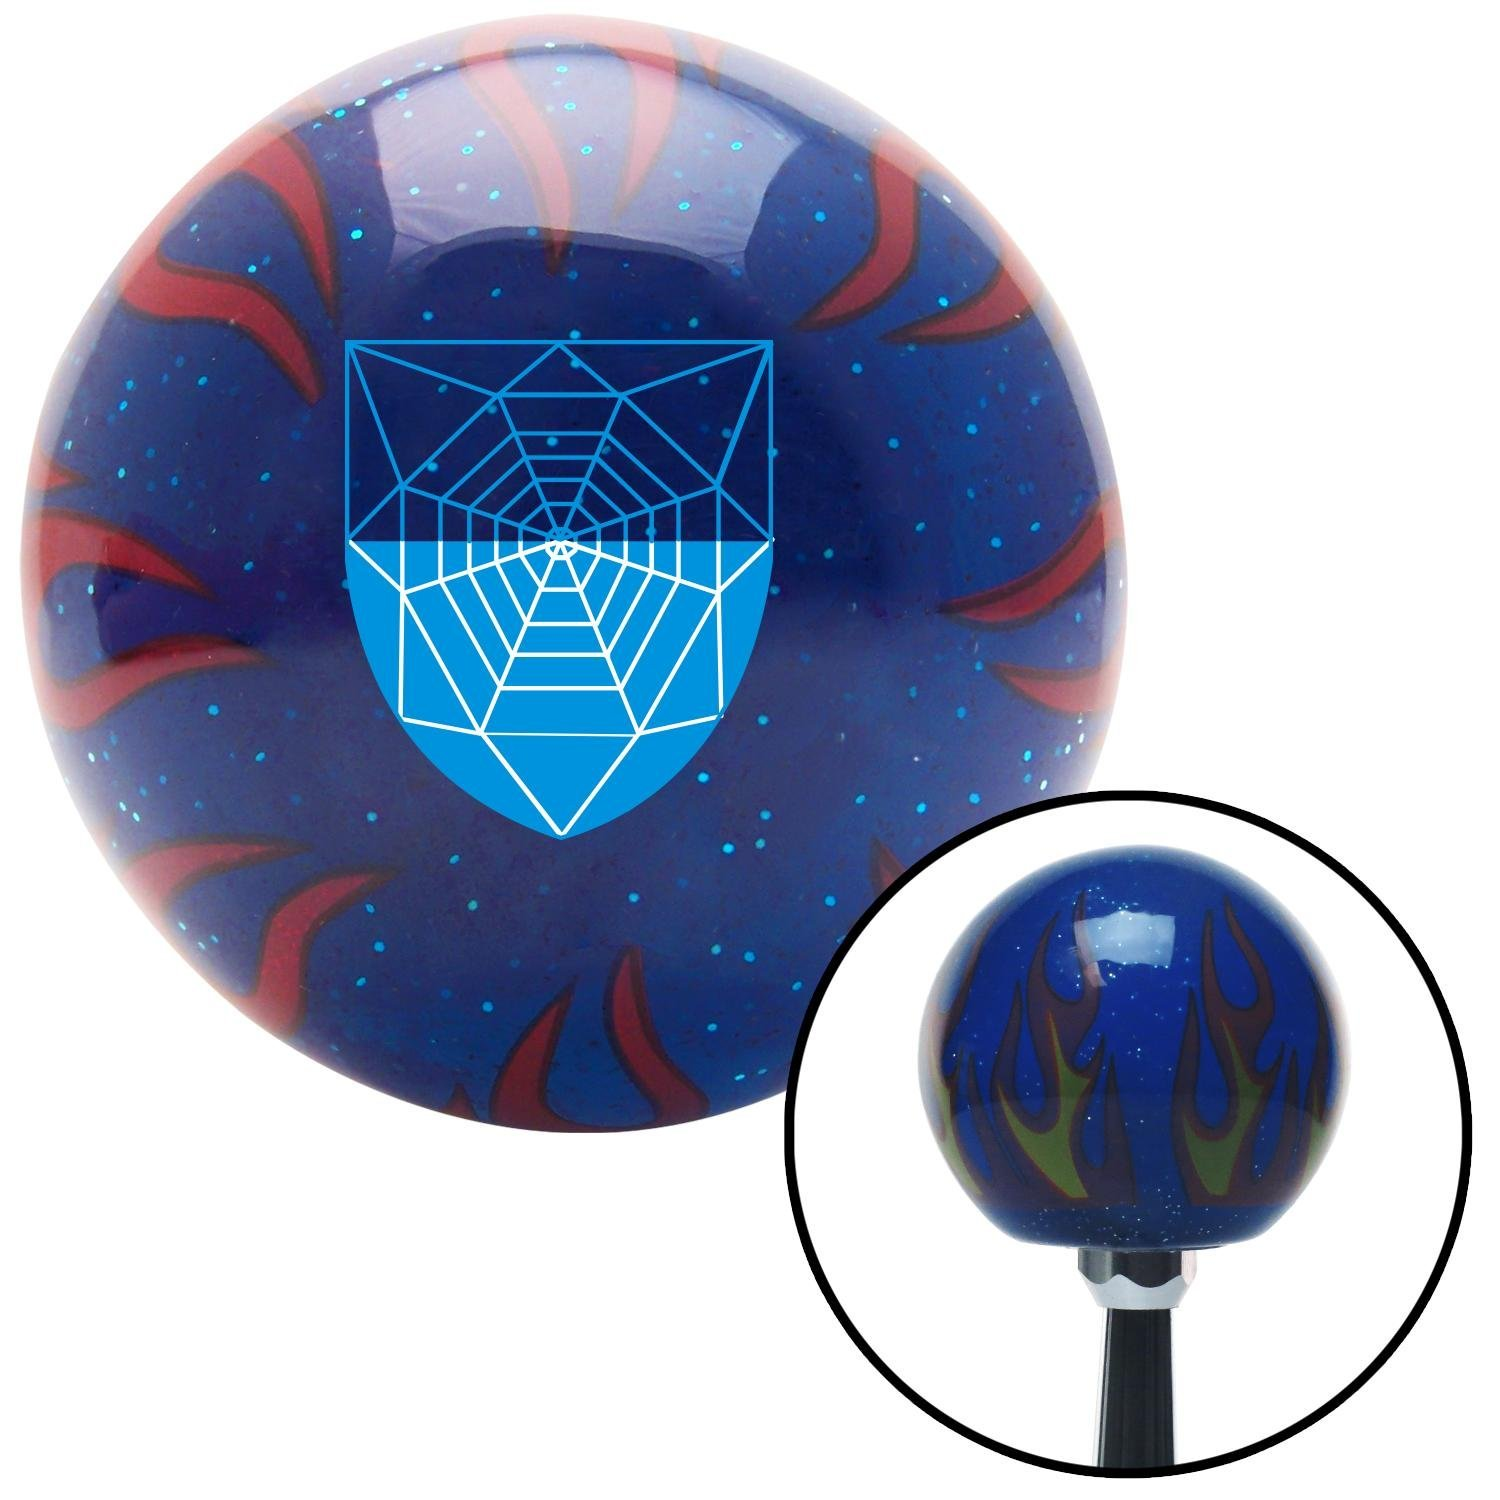 American Shifter 251781 Blue Flame Metal Flake Shift Knob with M16 x 1.5 Insert Spider Coat of Arms